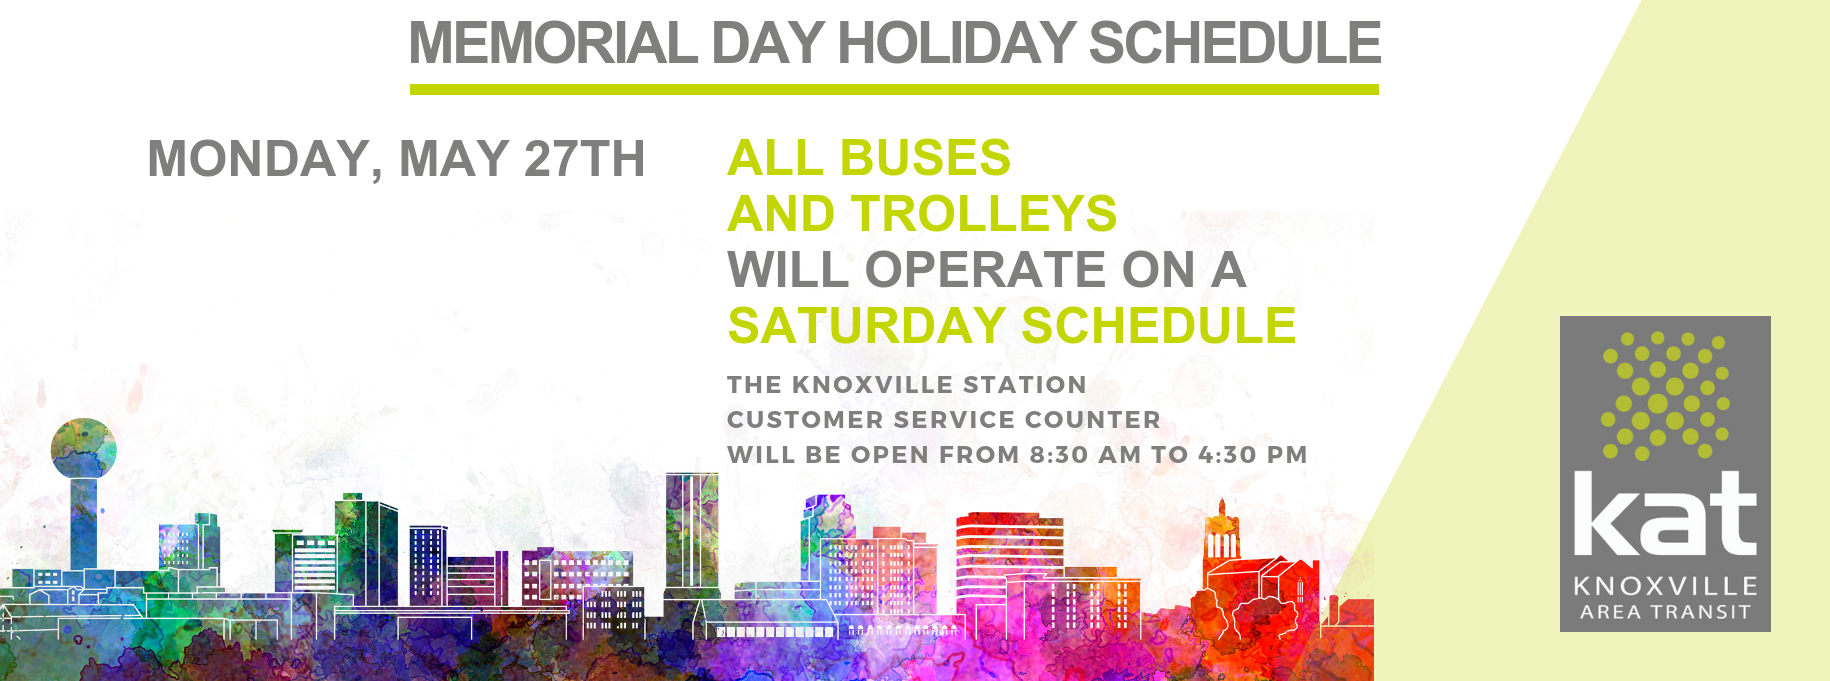 Memorial Day Holiday Schedule